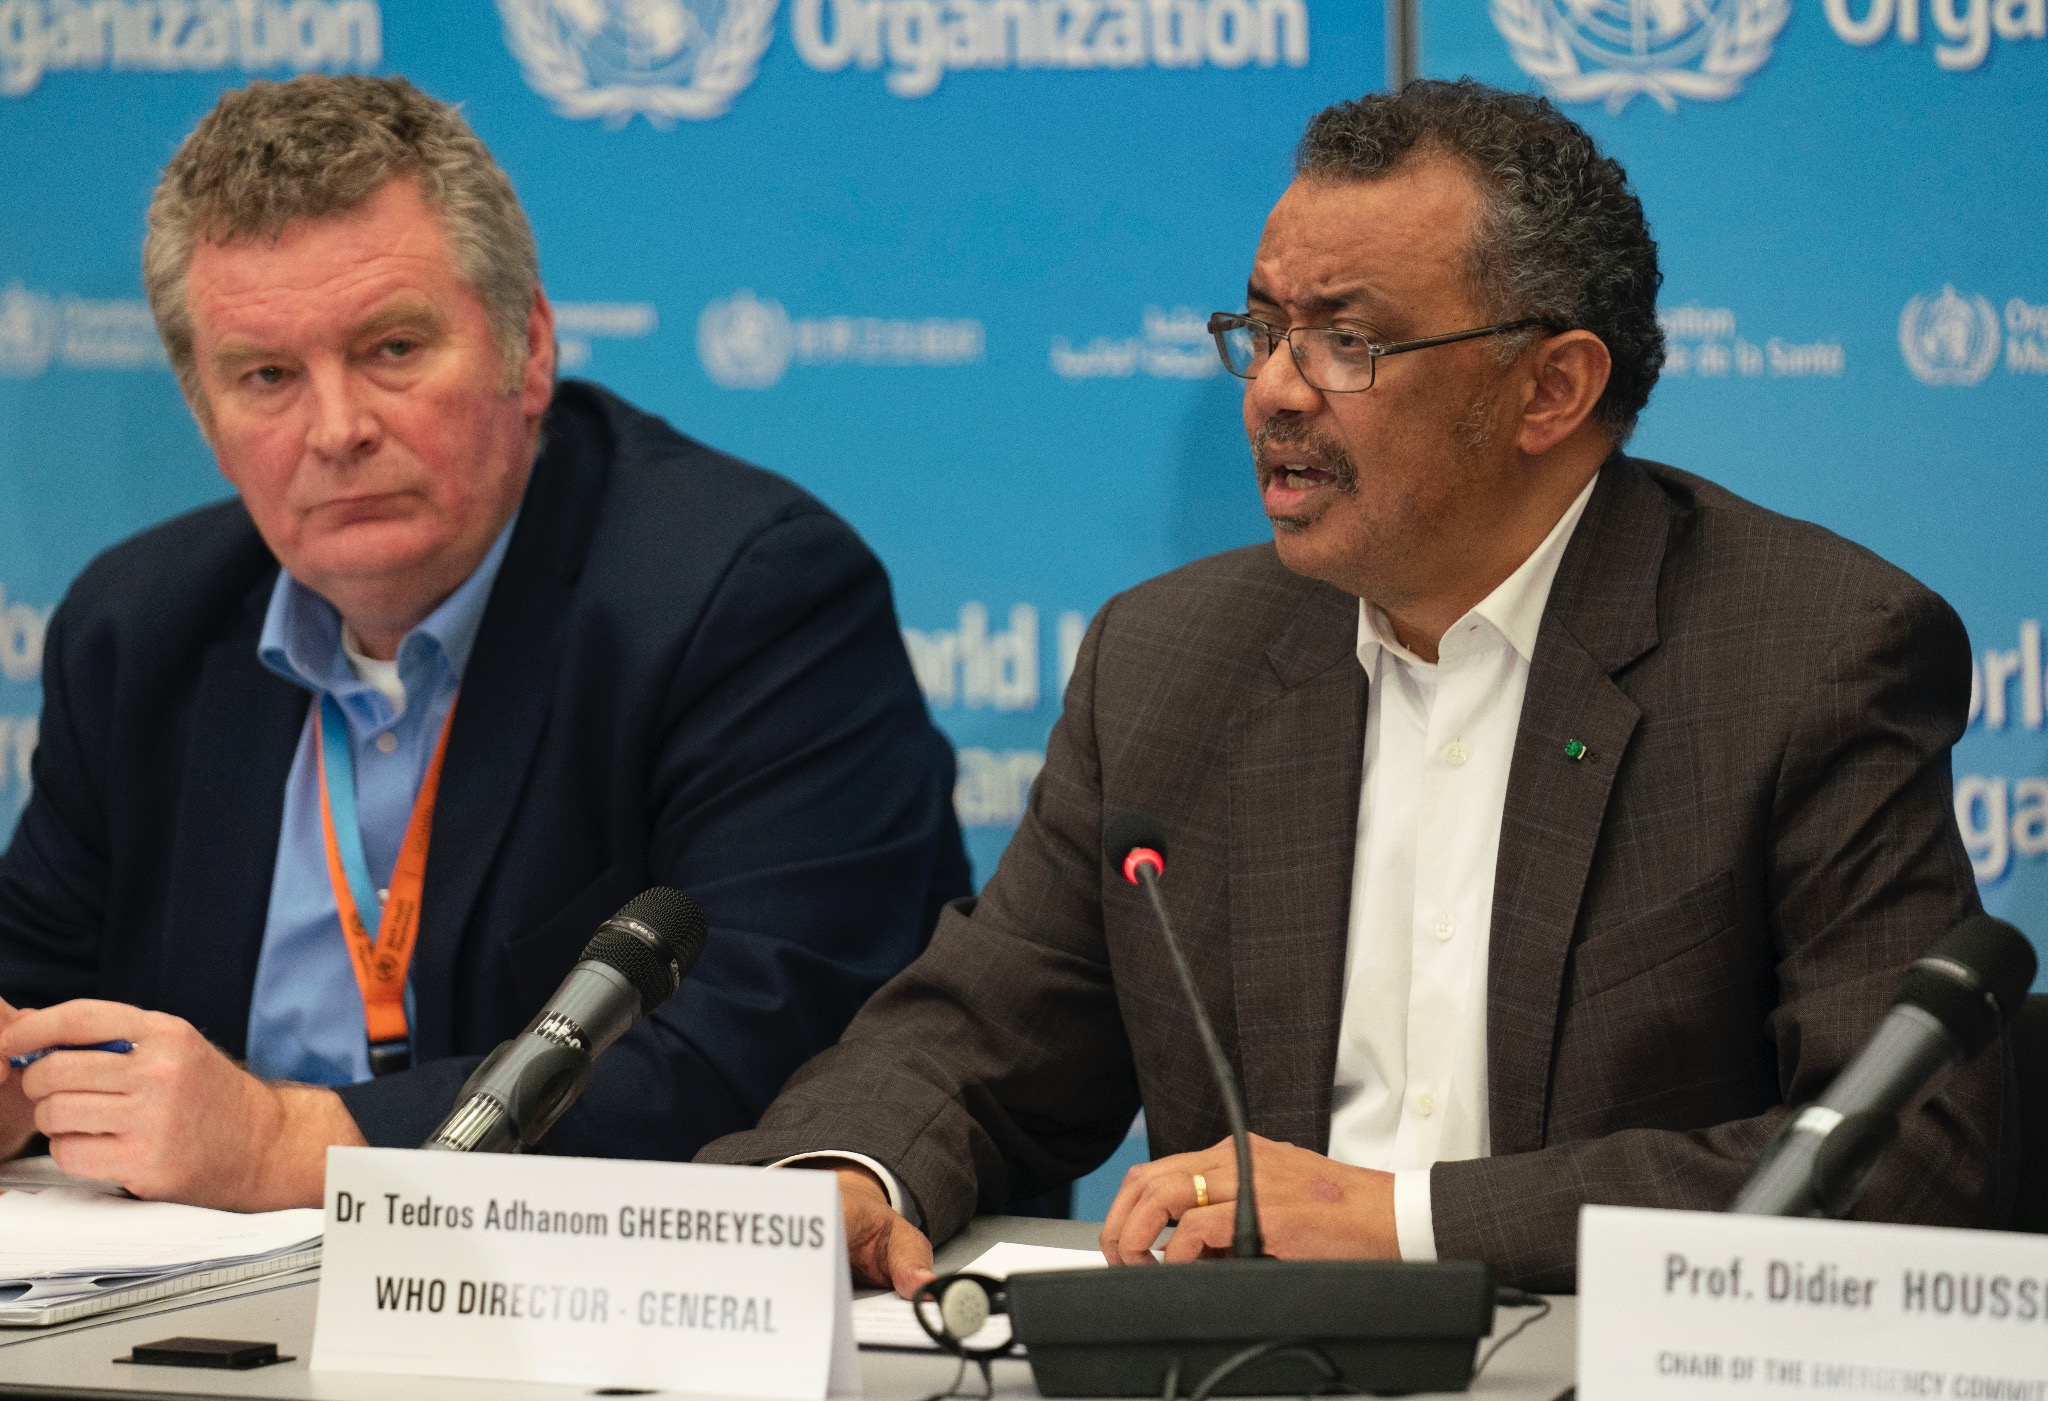 World Health Organization director-general Tedros Adhanom Ghebreyesus (right) praised Singapore's response to the COVID-19 infection. Photo courtesy: Twitter/@WHO